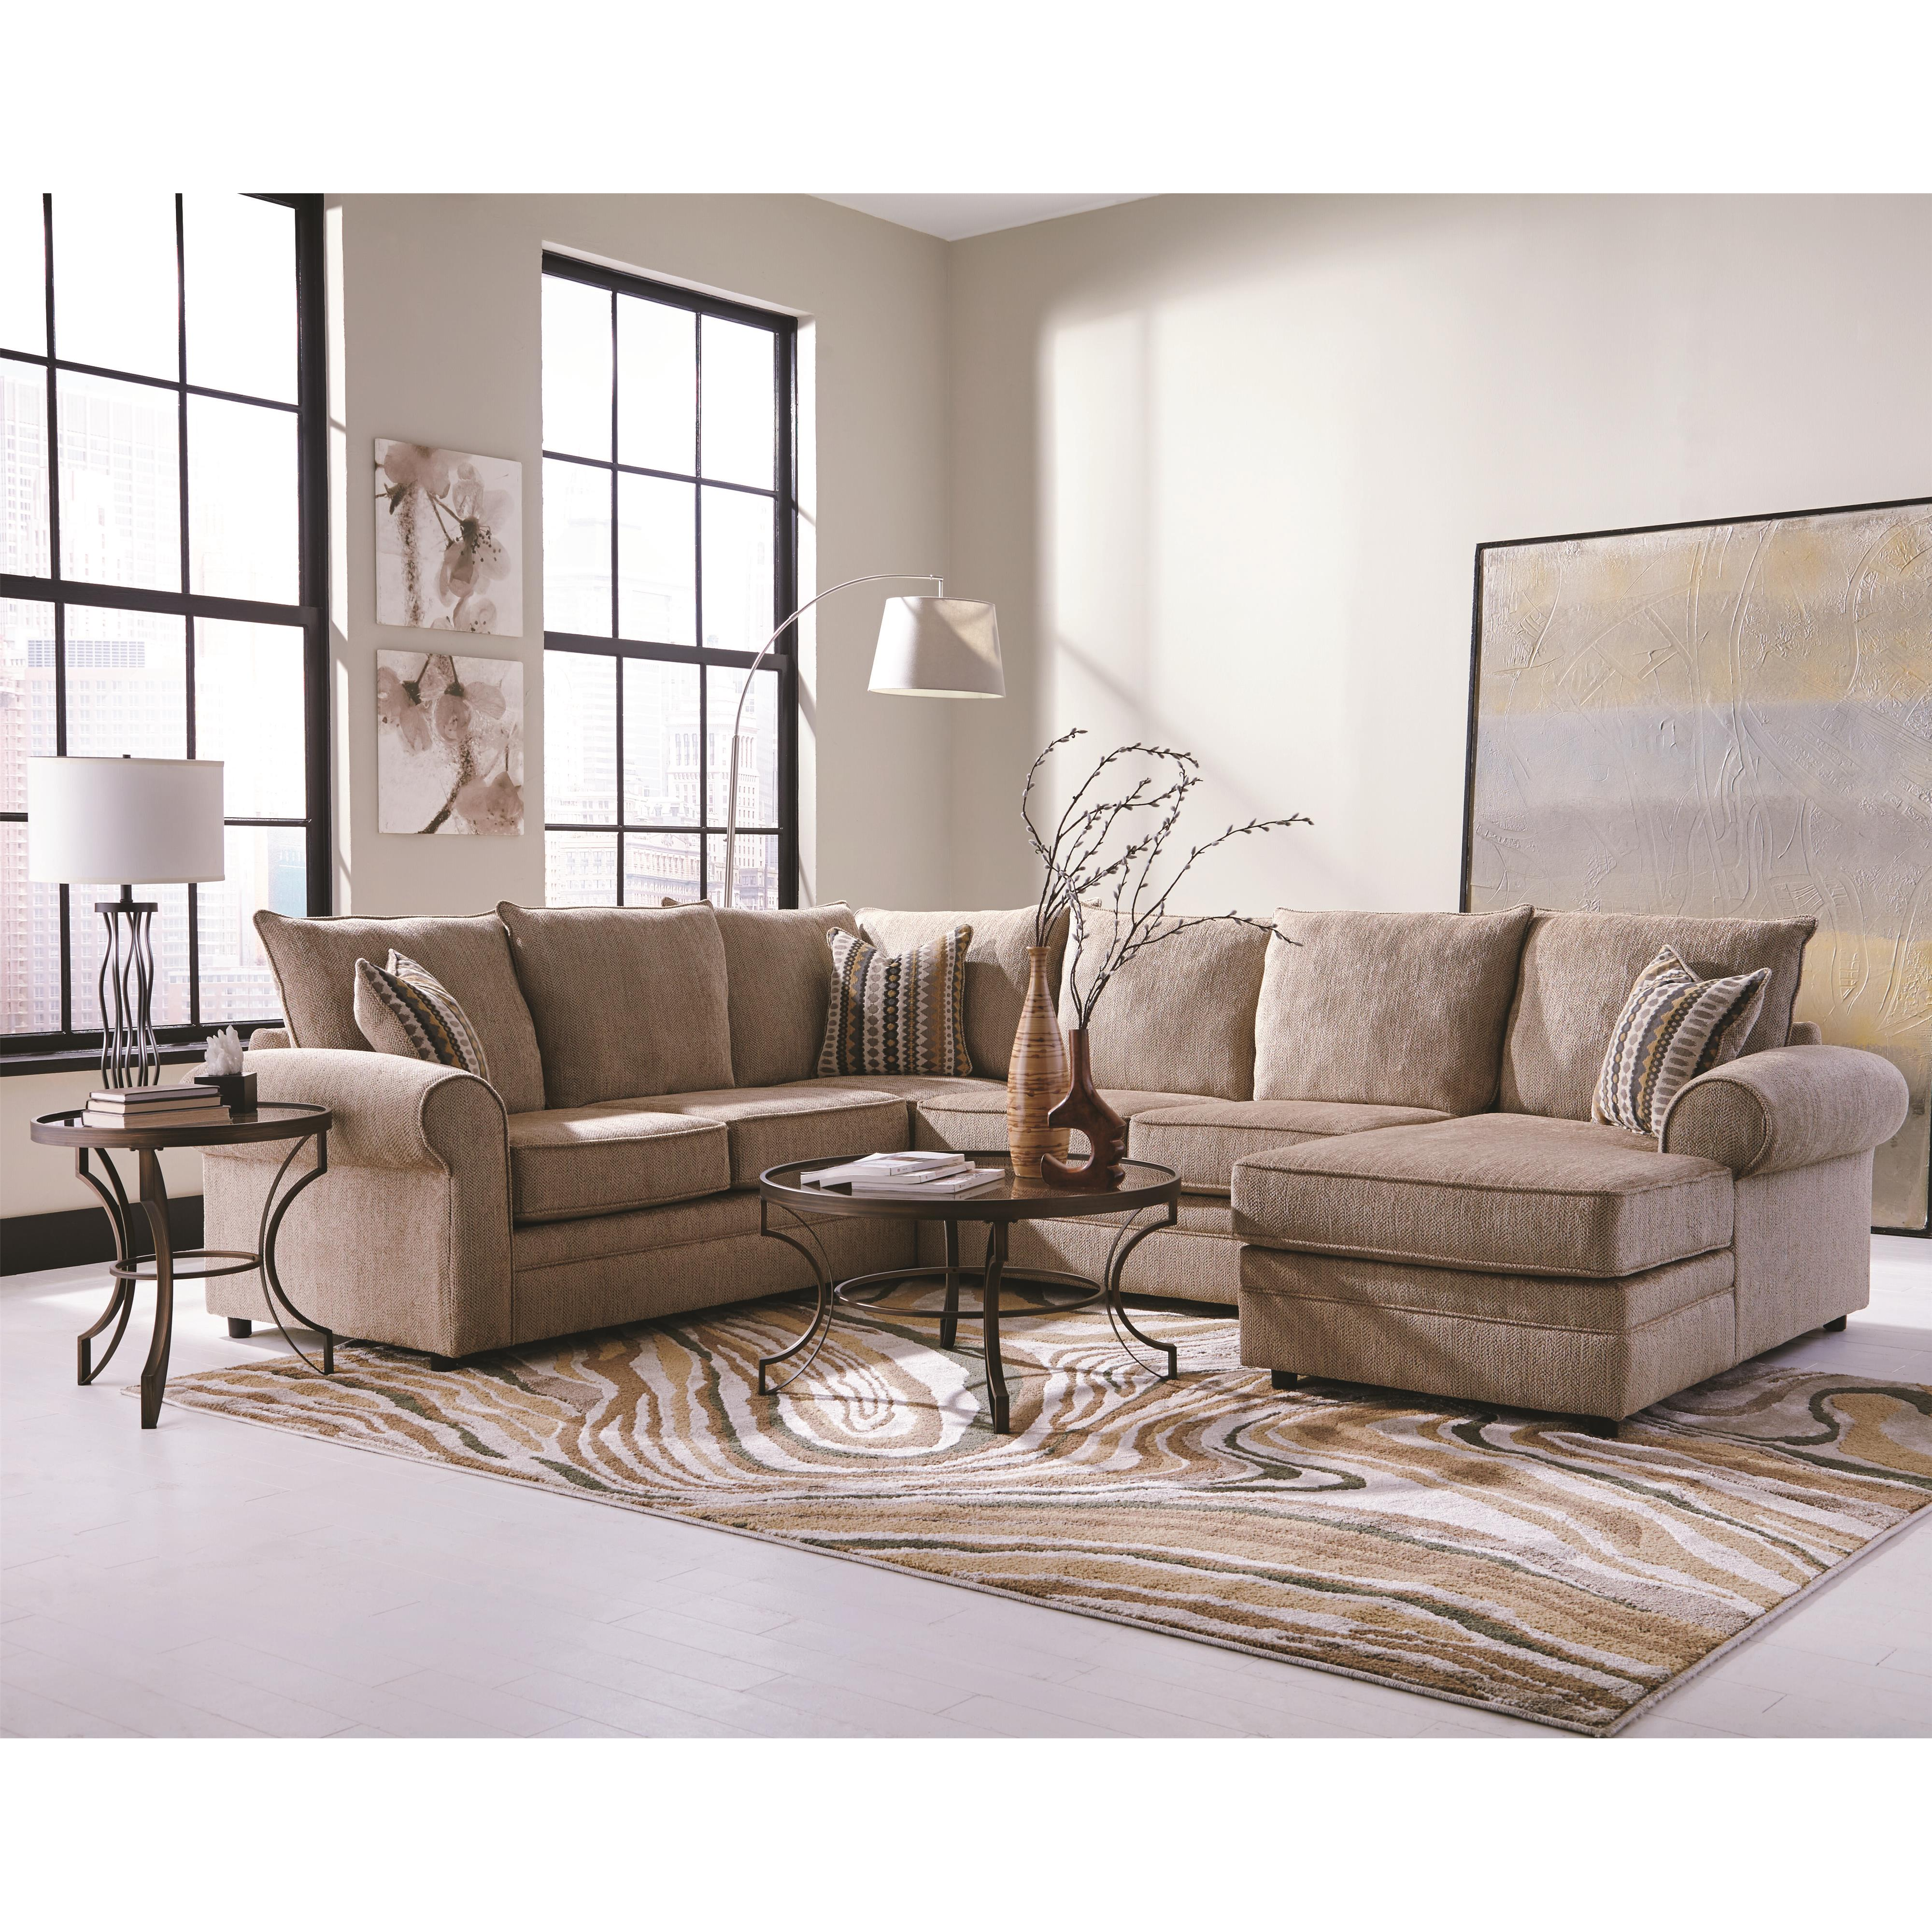 cream full leather chaise sectional sofa design within reach bantam coaster fairhaven 501149 colored u shaped with by